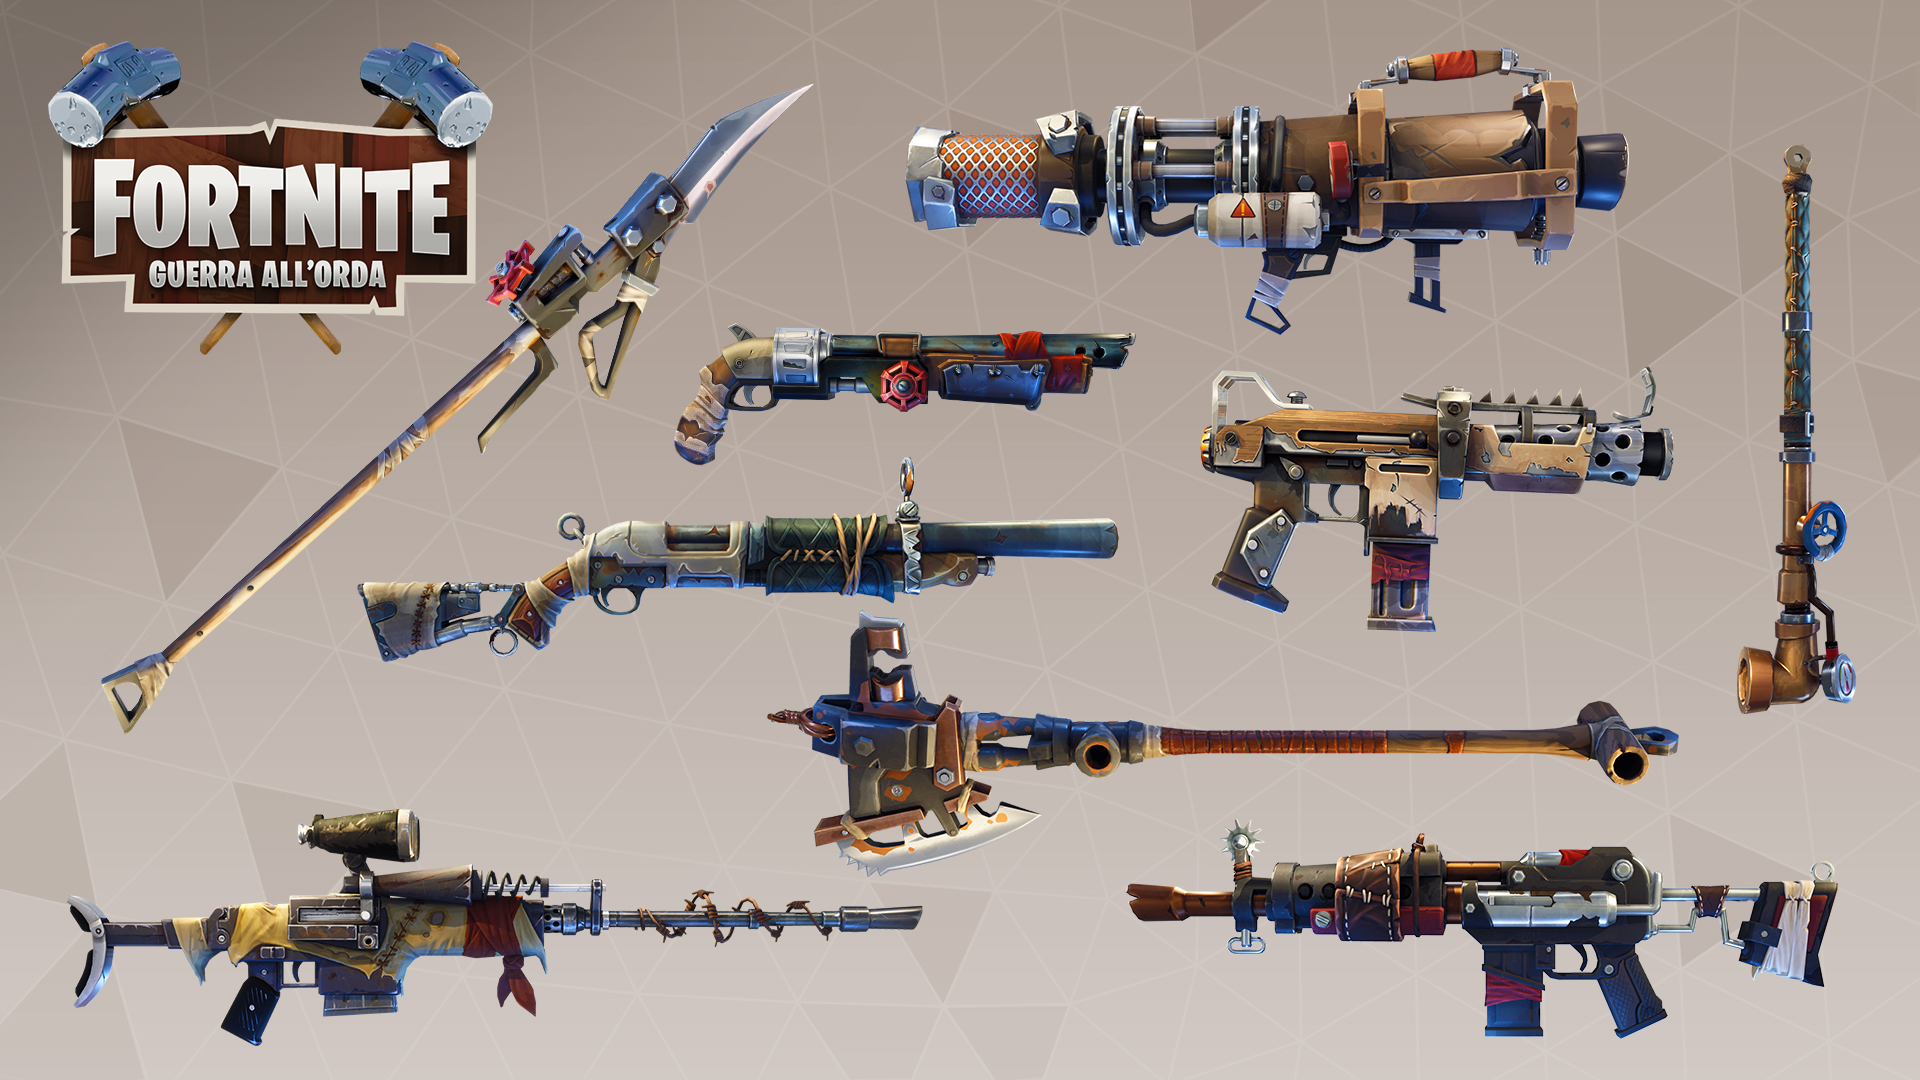 Fortnite%2Fblog%2Fea-1-7-patch-notes%2FIT-HB-Weapons-1920x1080-6f6535ba10ab94de0b6014426f9b25695de96e0d